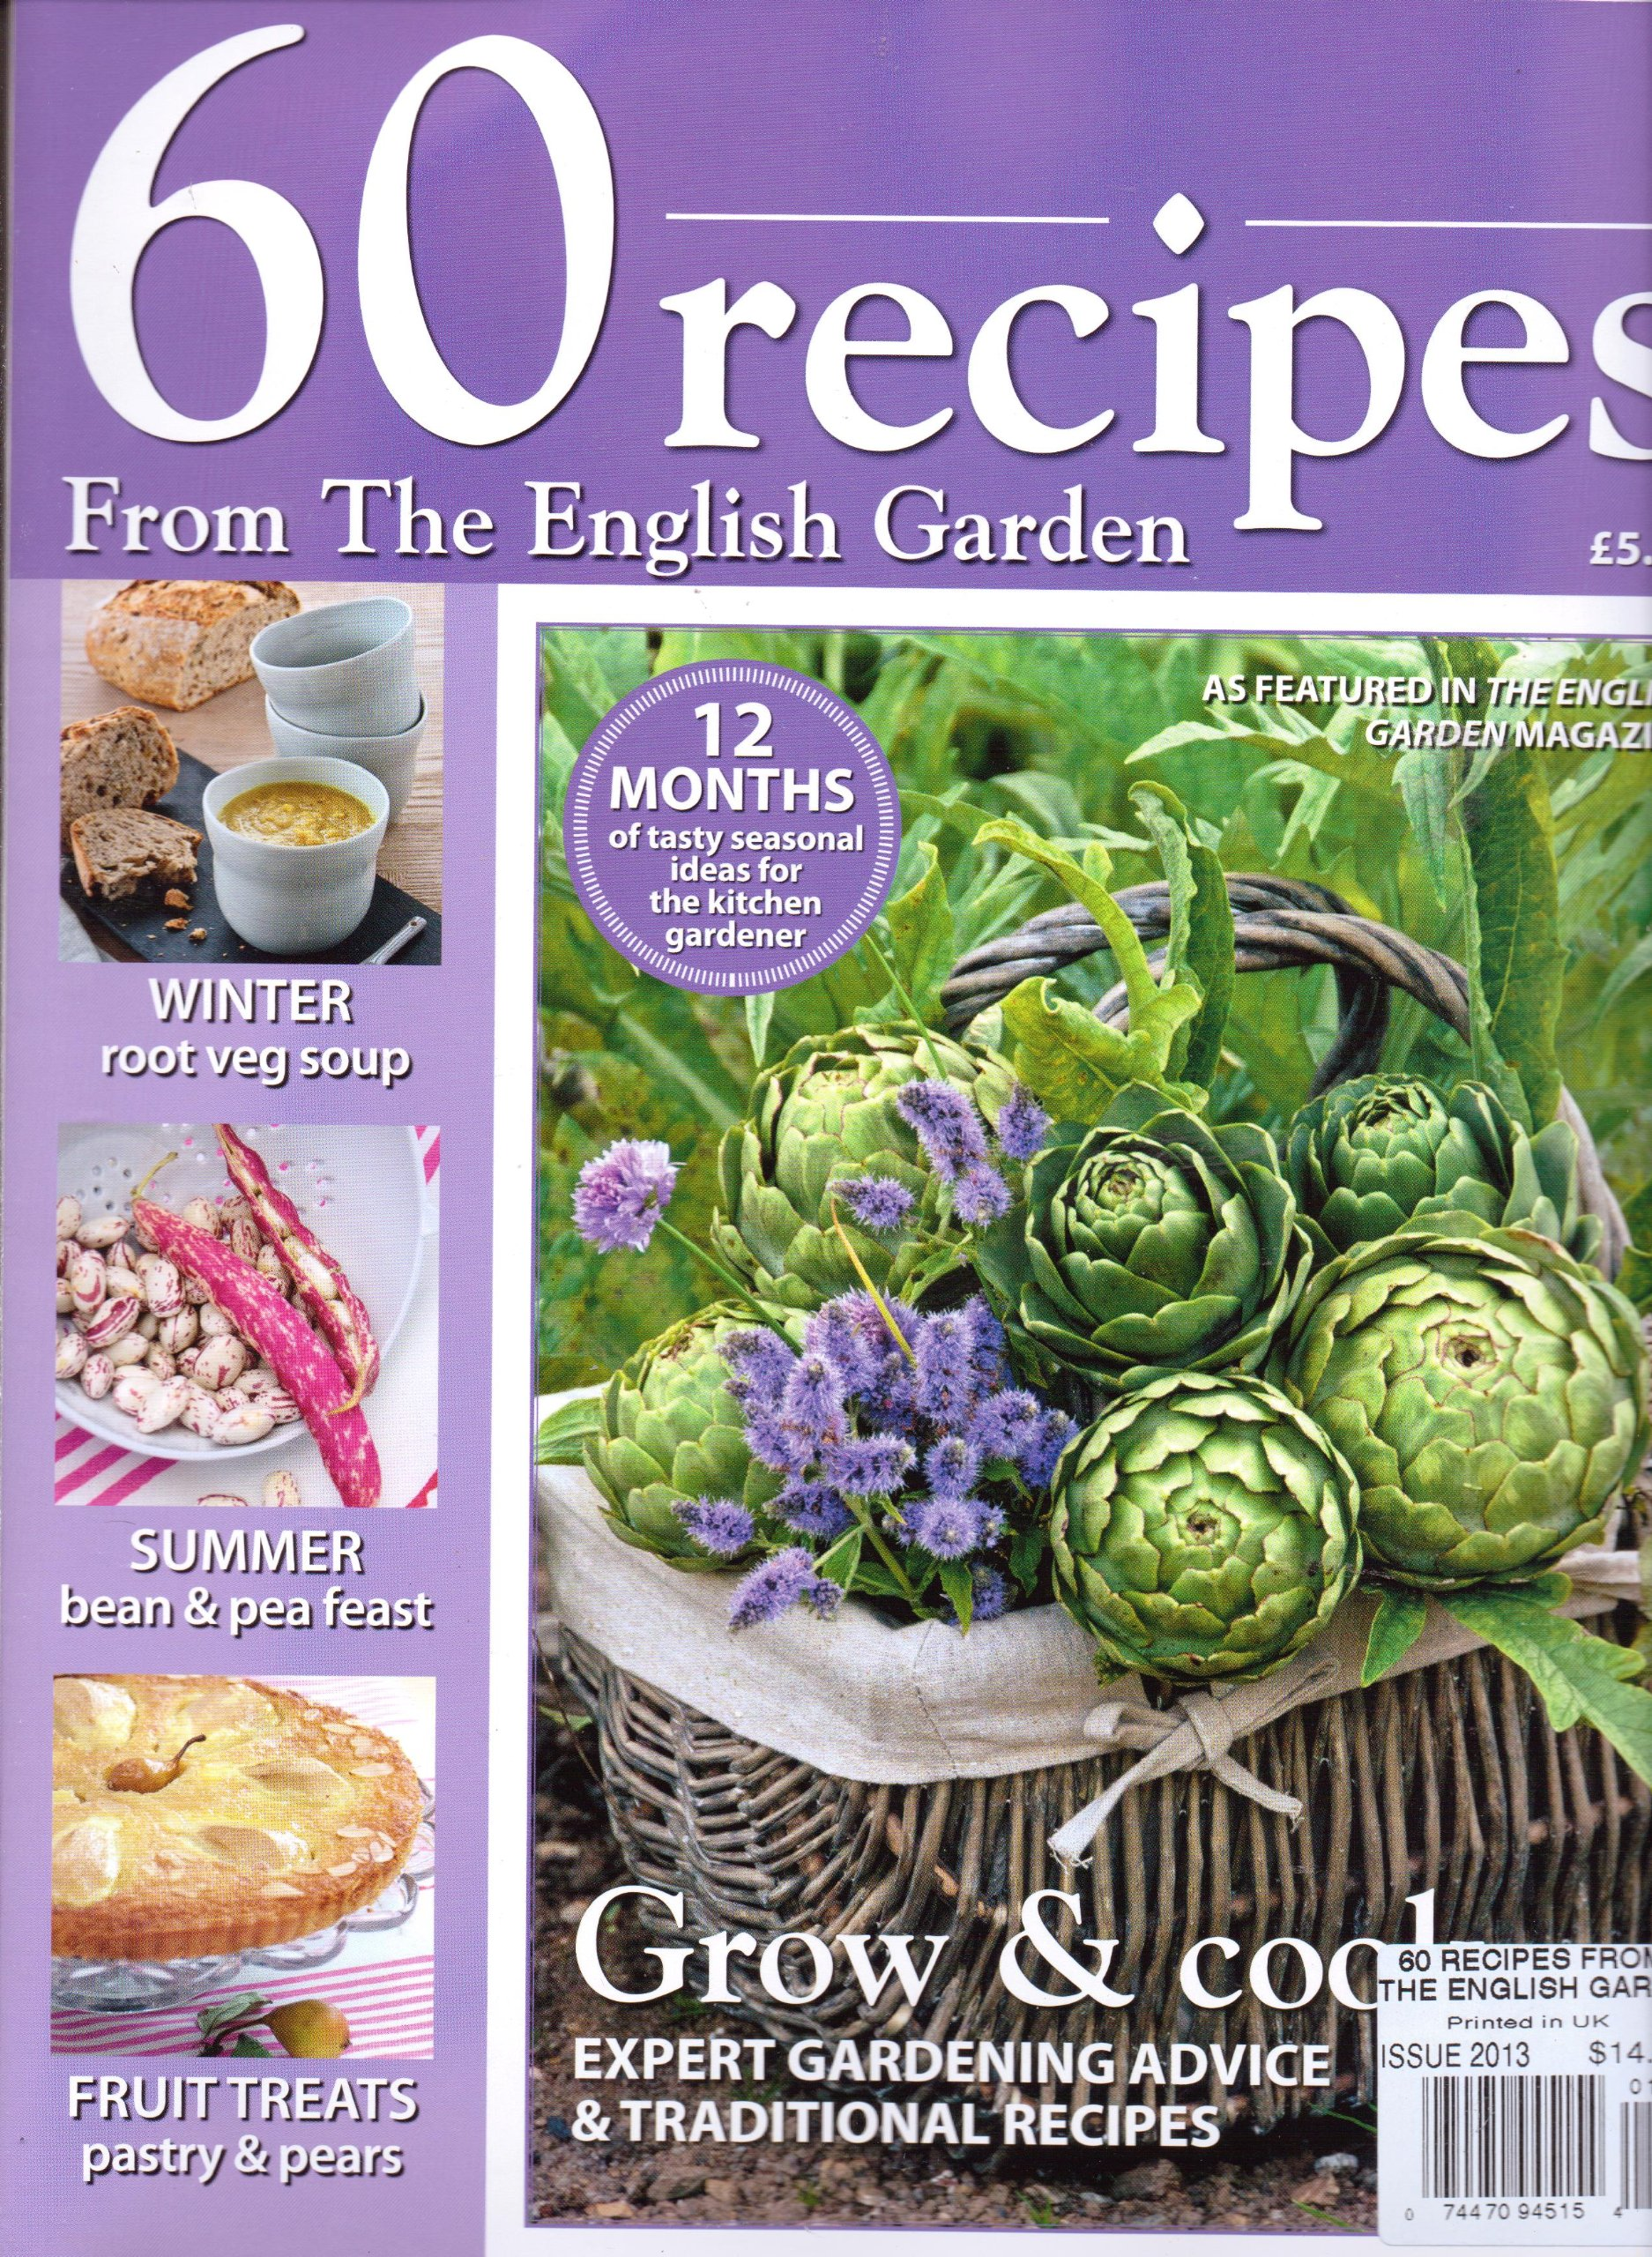 60 RECIPES From The ENGLISH GARDEN - Grow & Cook Advice. 2013.